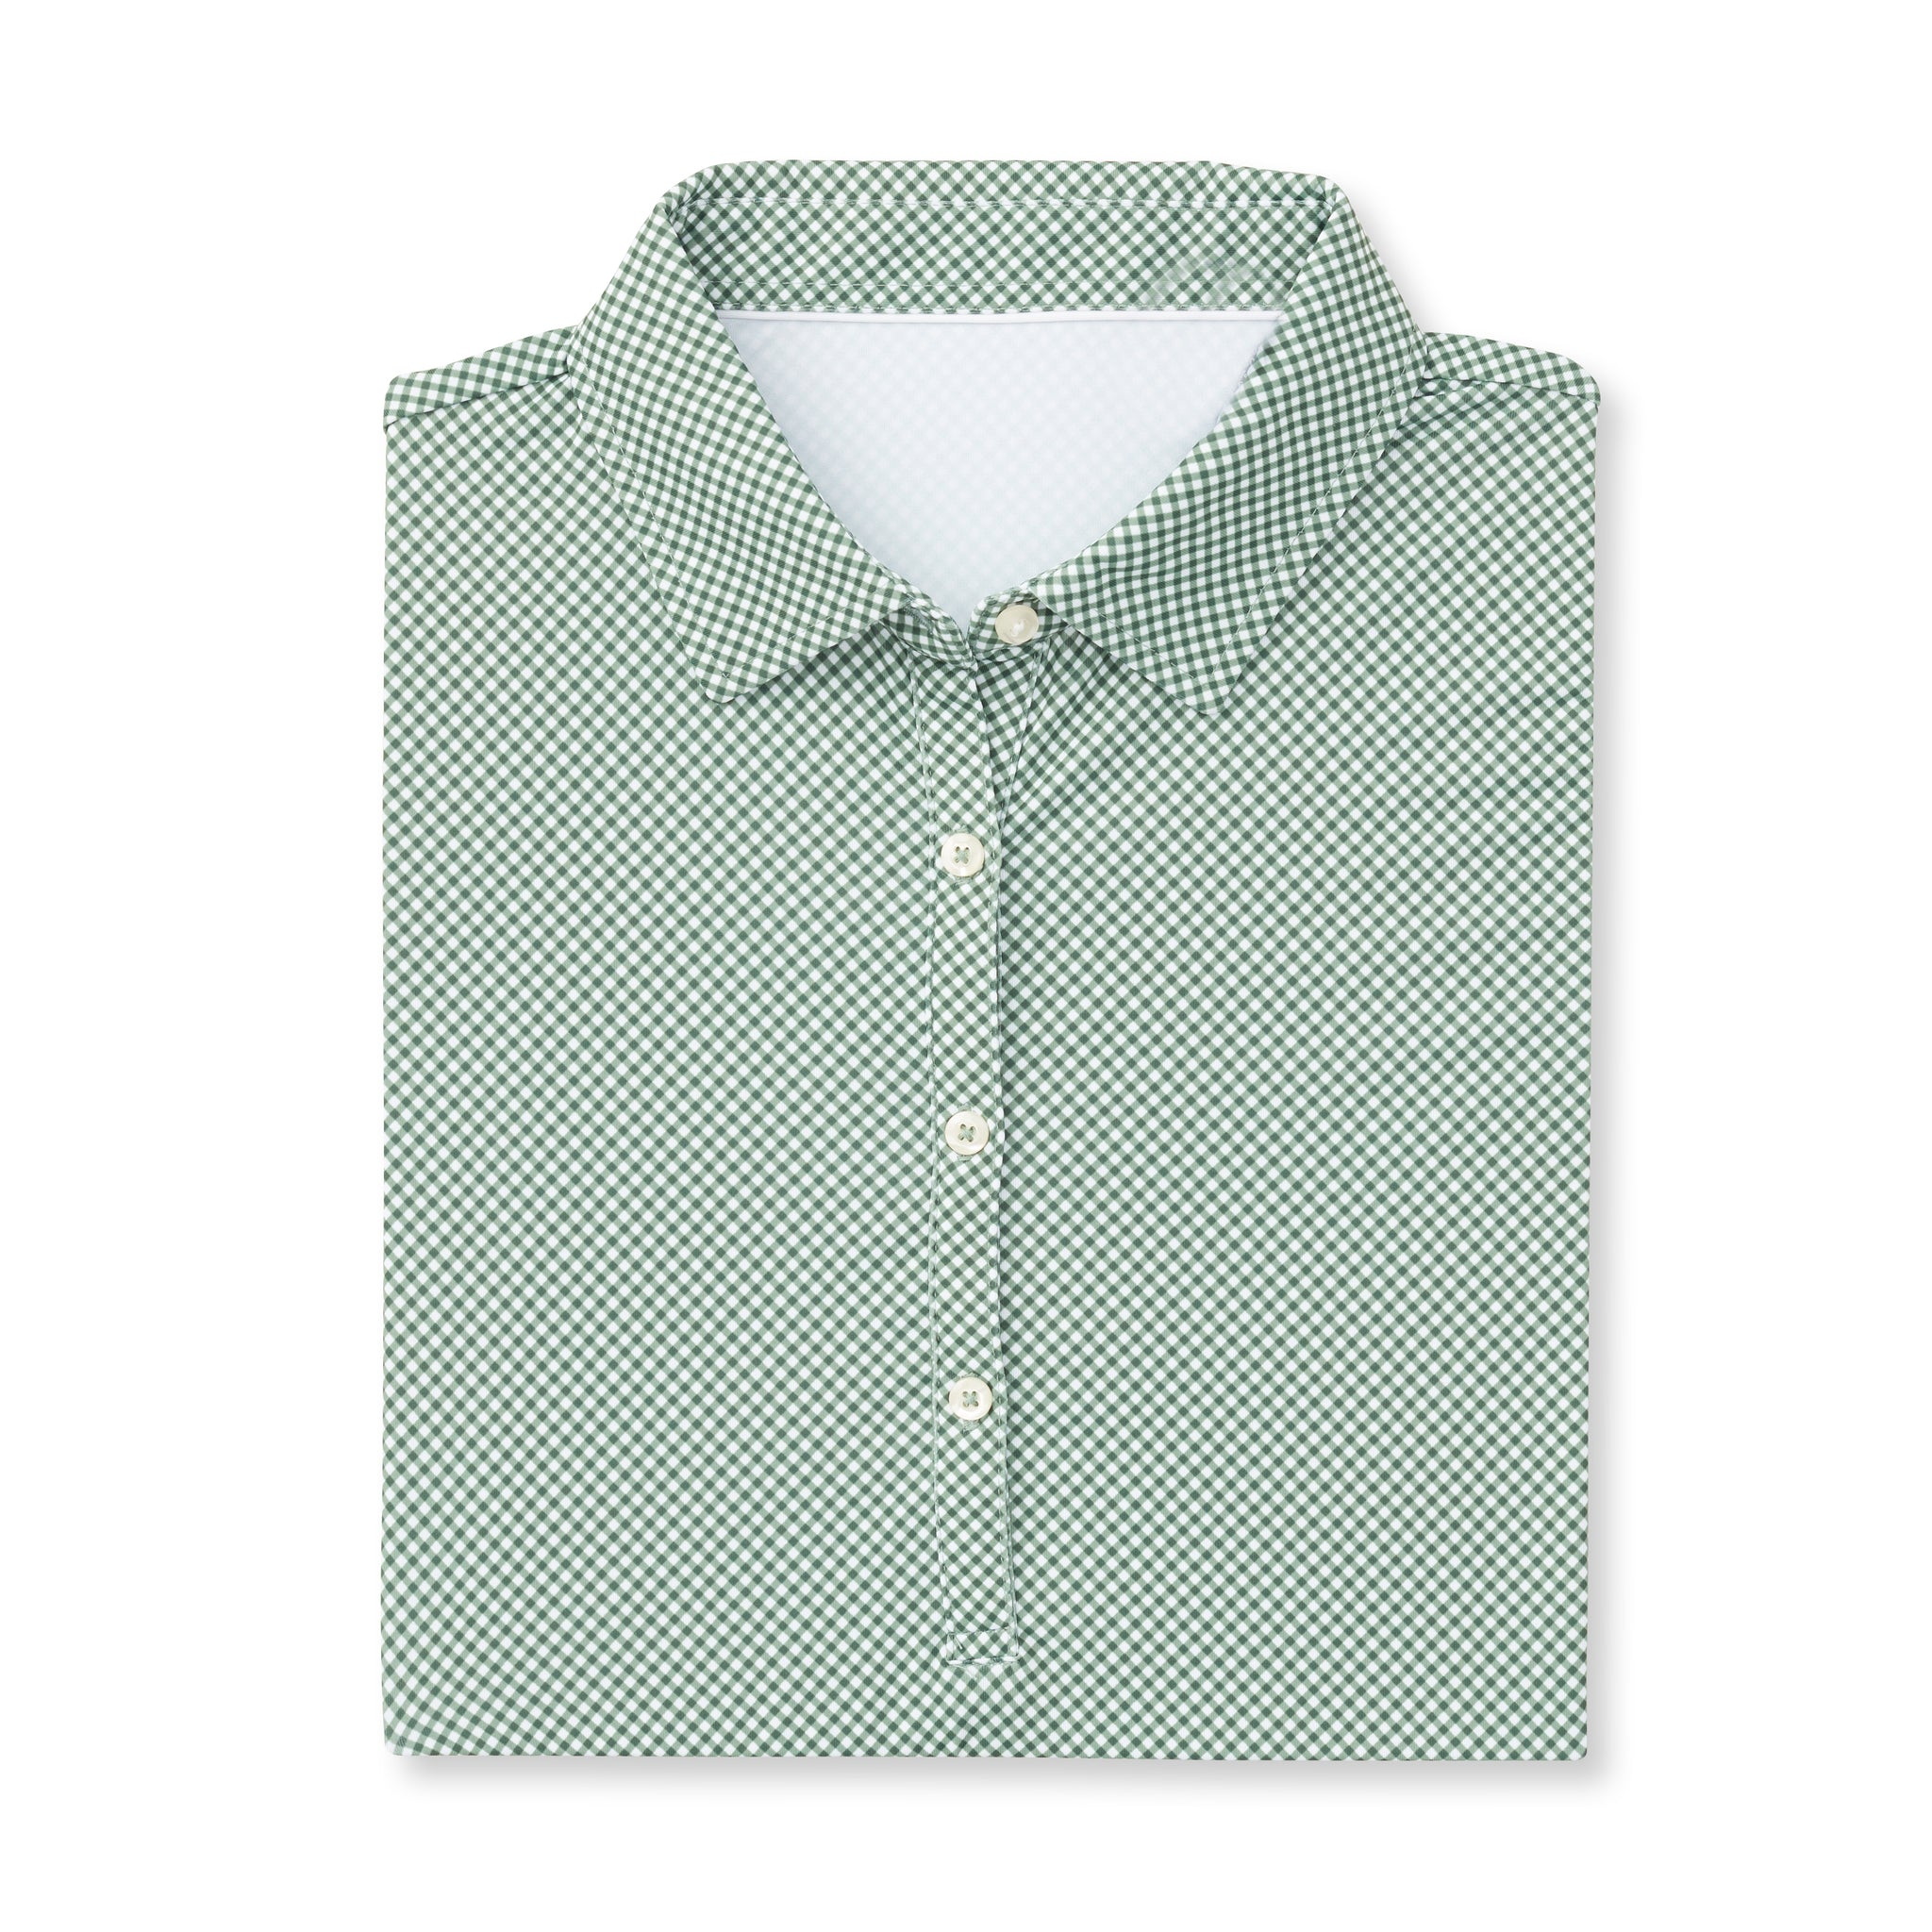 THE WOMEN'S VINEYARD GINGHAM POLO - Pine IS76801W